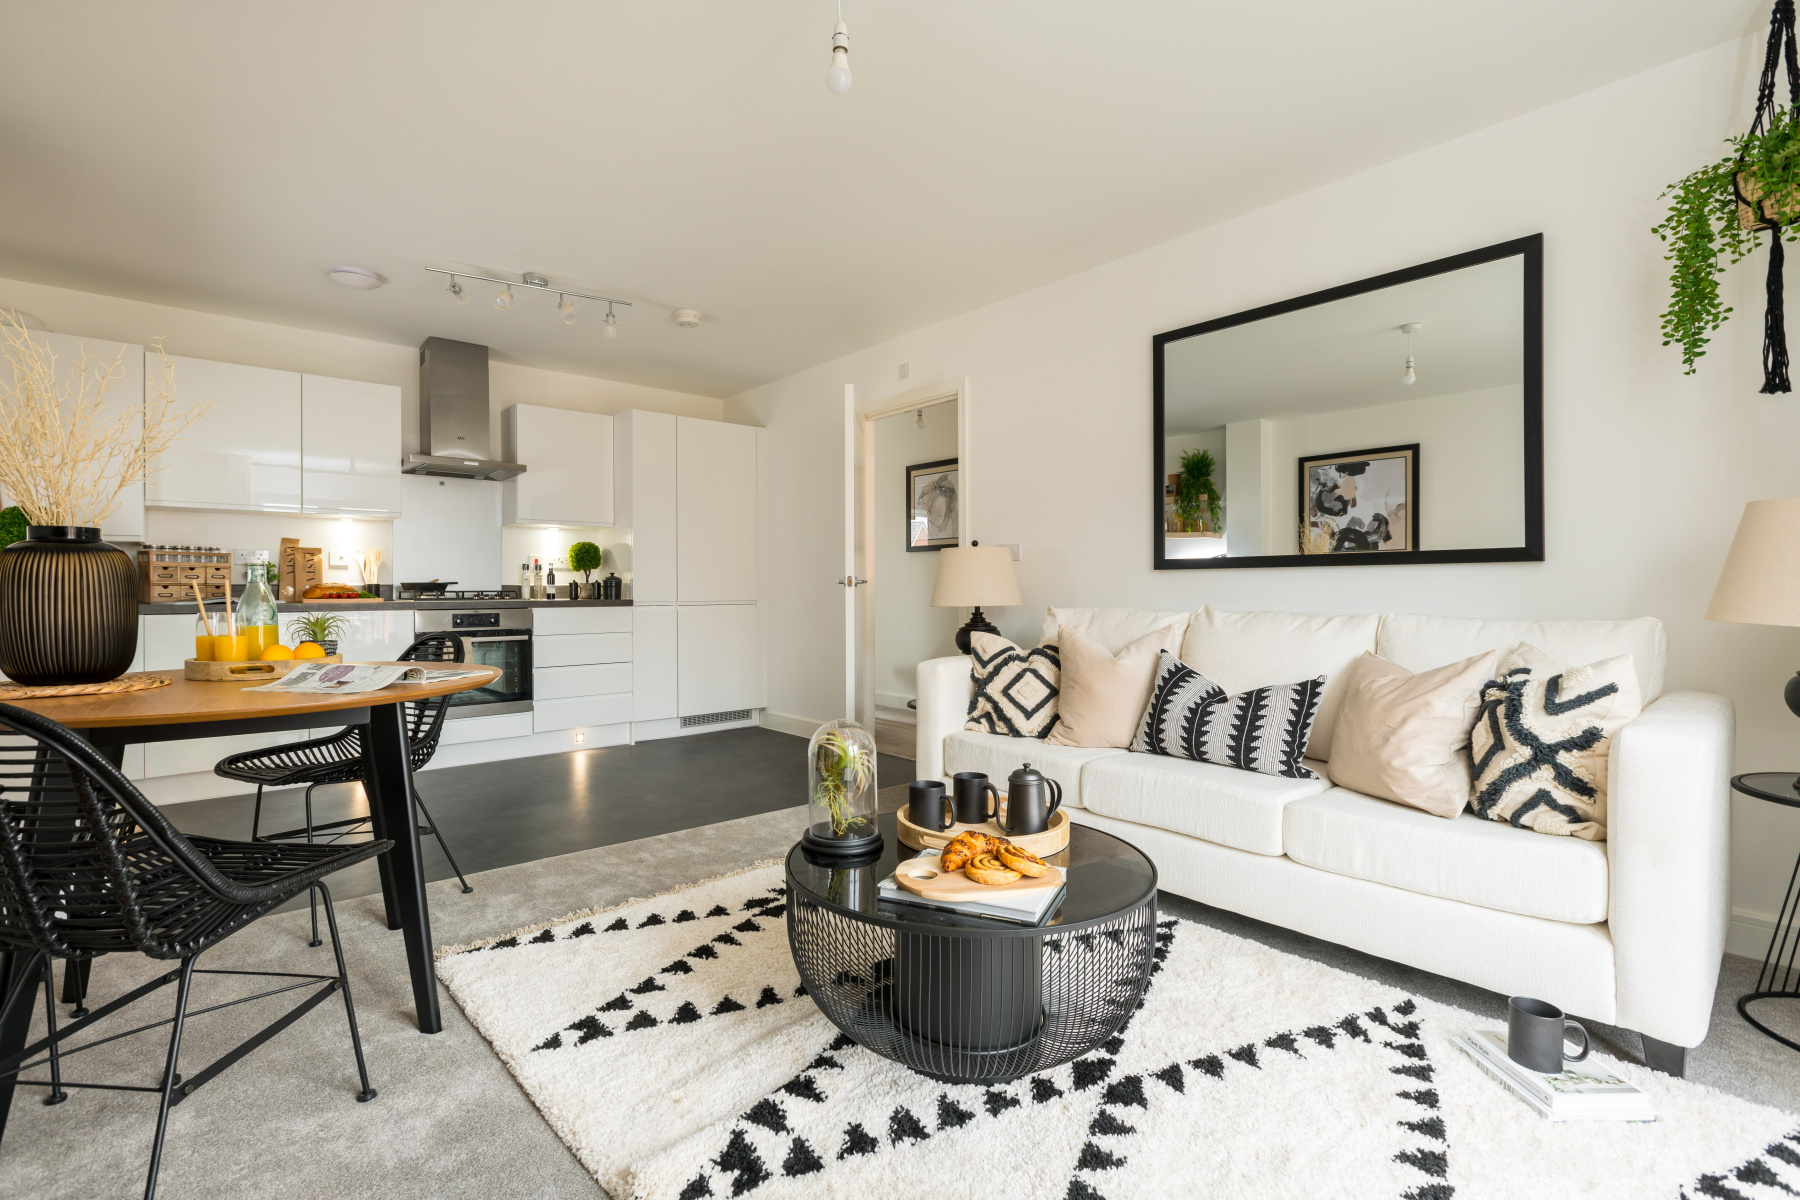 TW Exeter - Mountbatten Mews - Oaklea House example living room